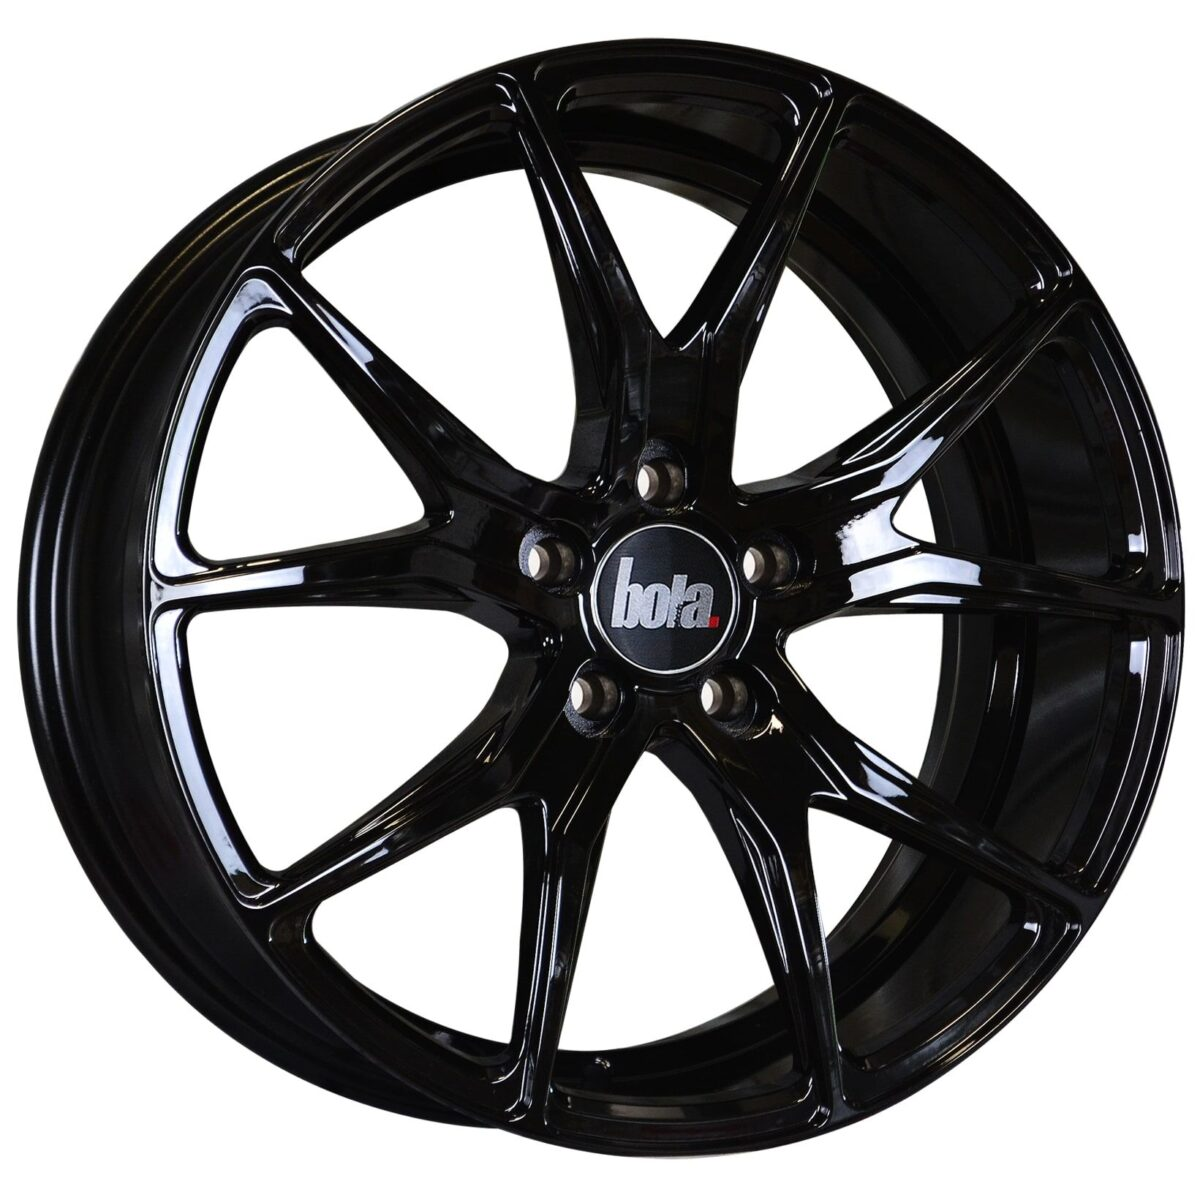 "18"" BOLA B6 Wheels - Gloss Black - VW / Audi / Mercedes - 5x112"